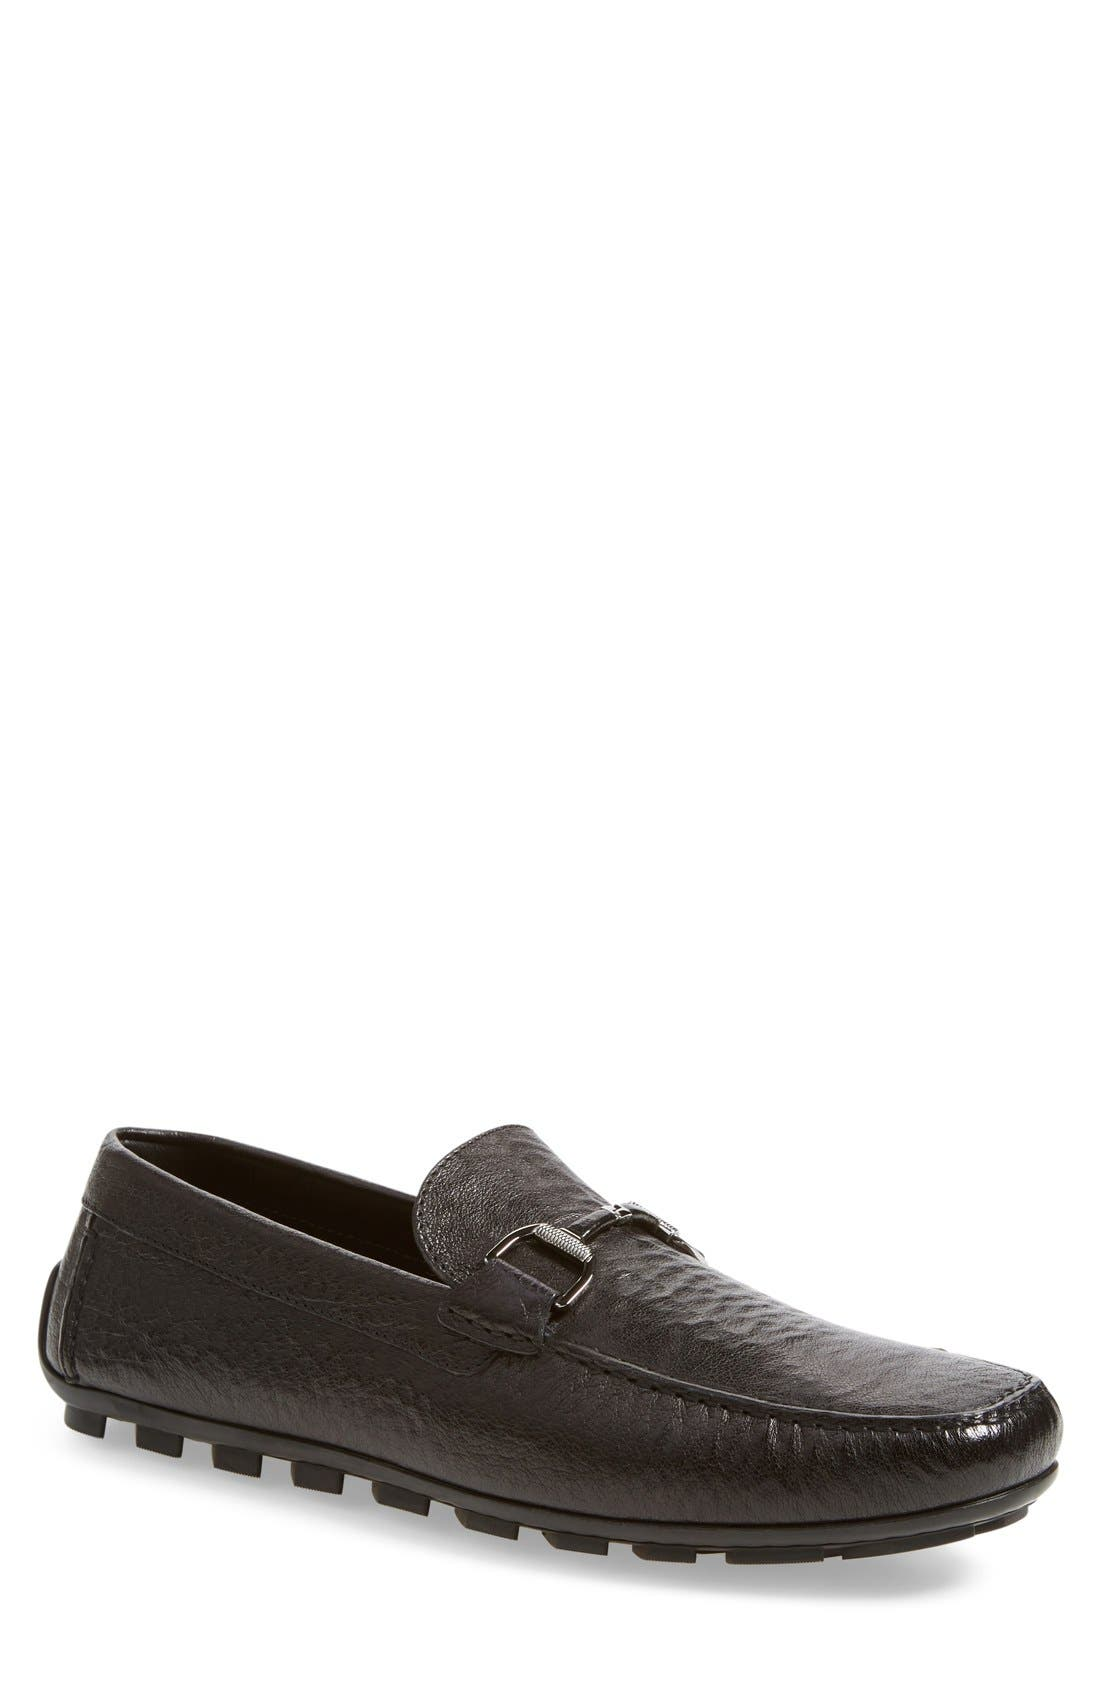 ERMENEGILDO ZEGNA,                             Driving Shoe,                             Main thumbnail 1, color,                             001